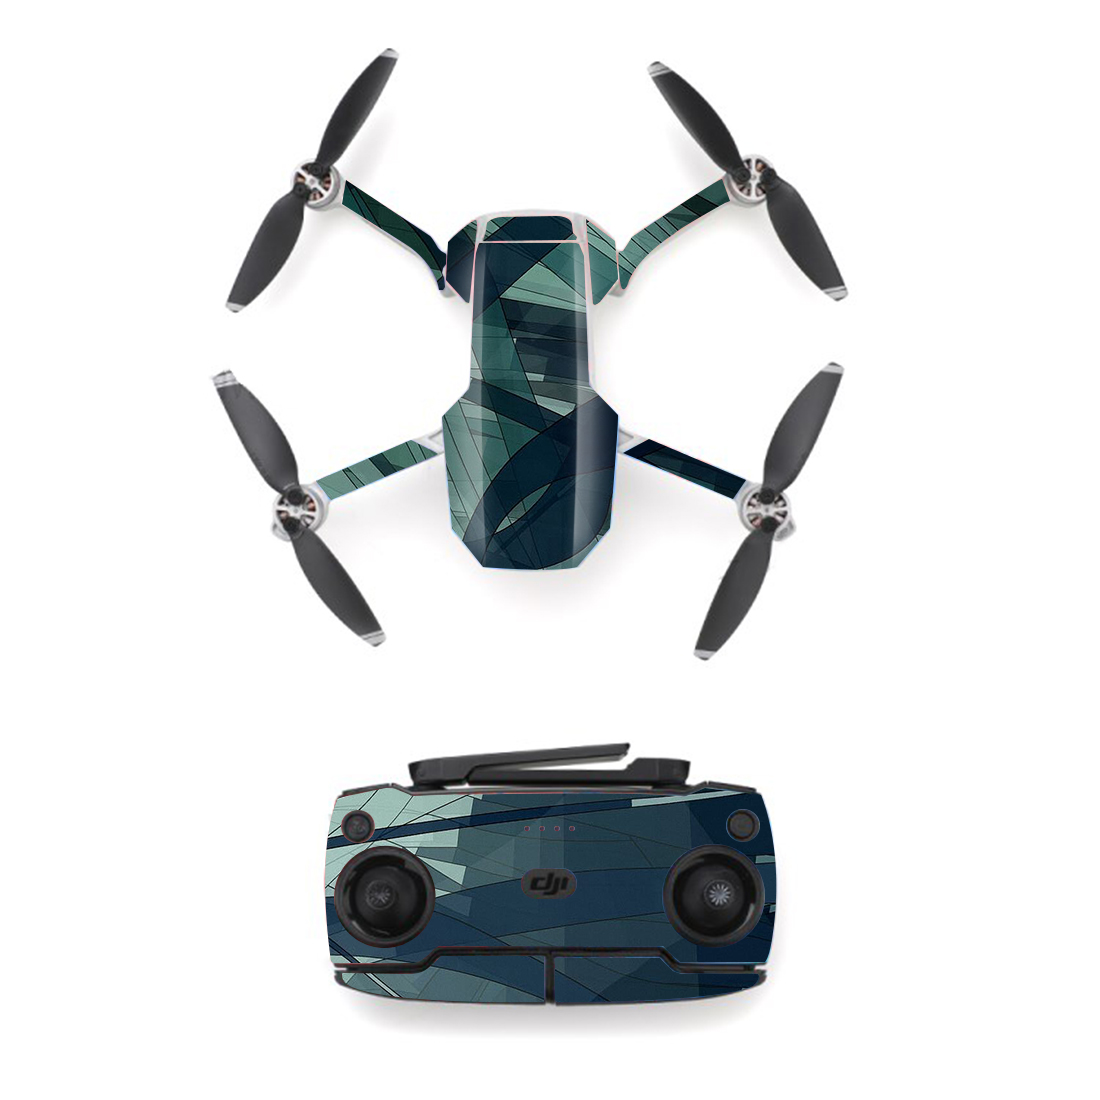 Colorful Style Skin Sticker For DJI Mavic Mini Drone And Remote Controller Decal Vinyl Skins Cover M0089